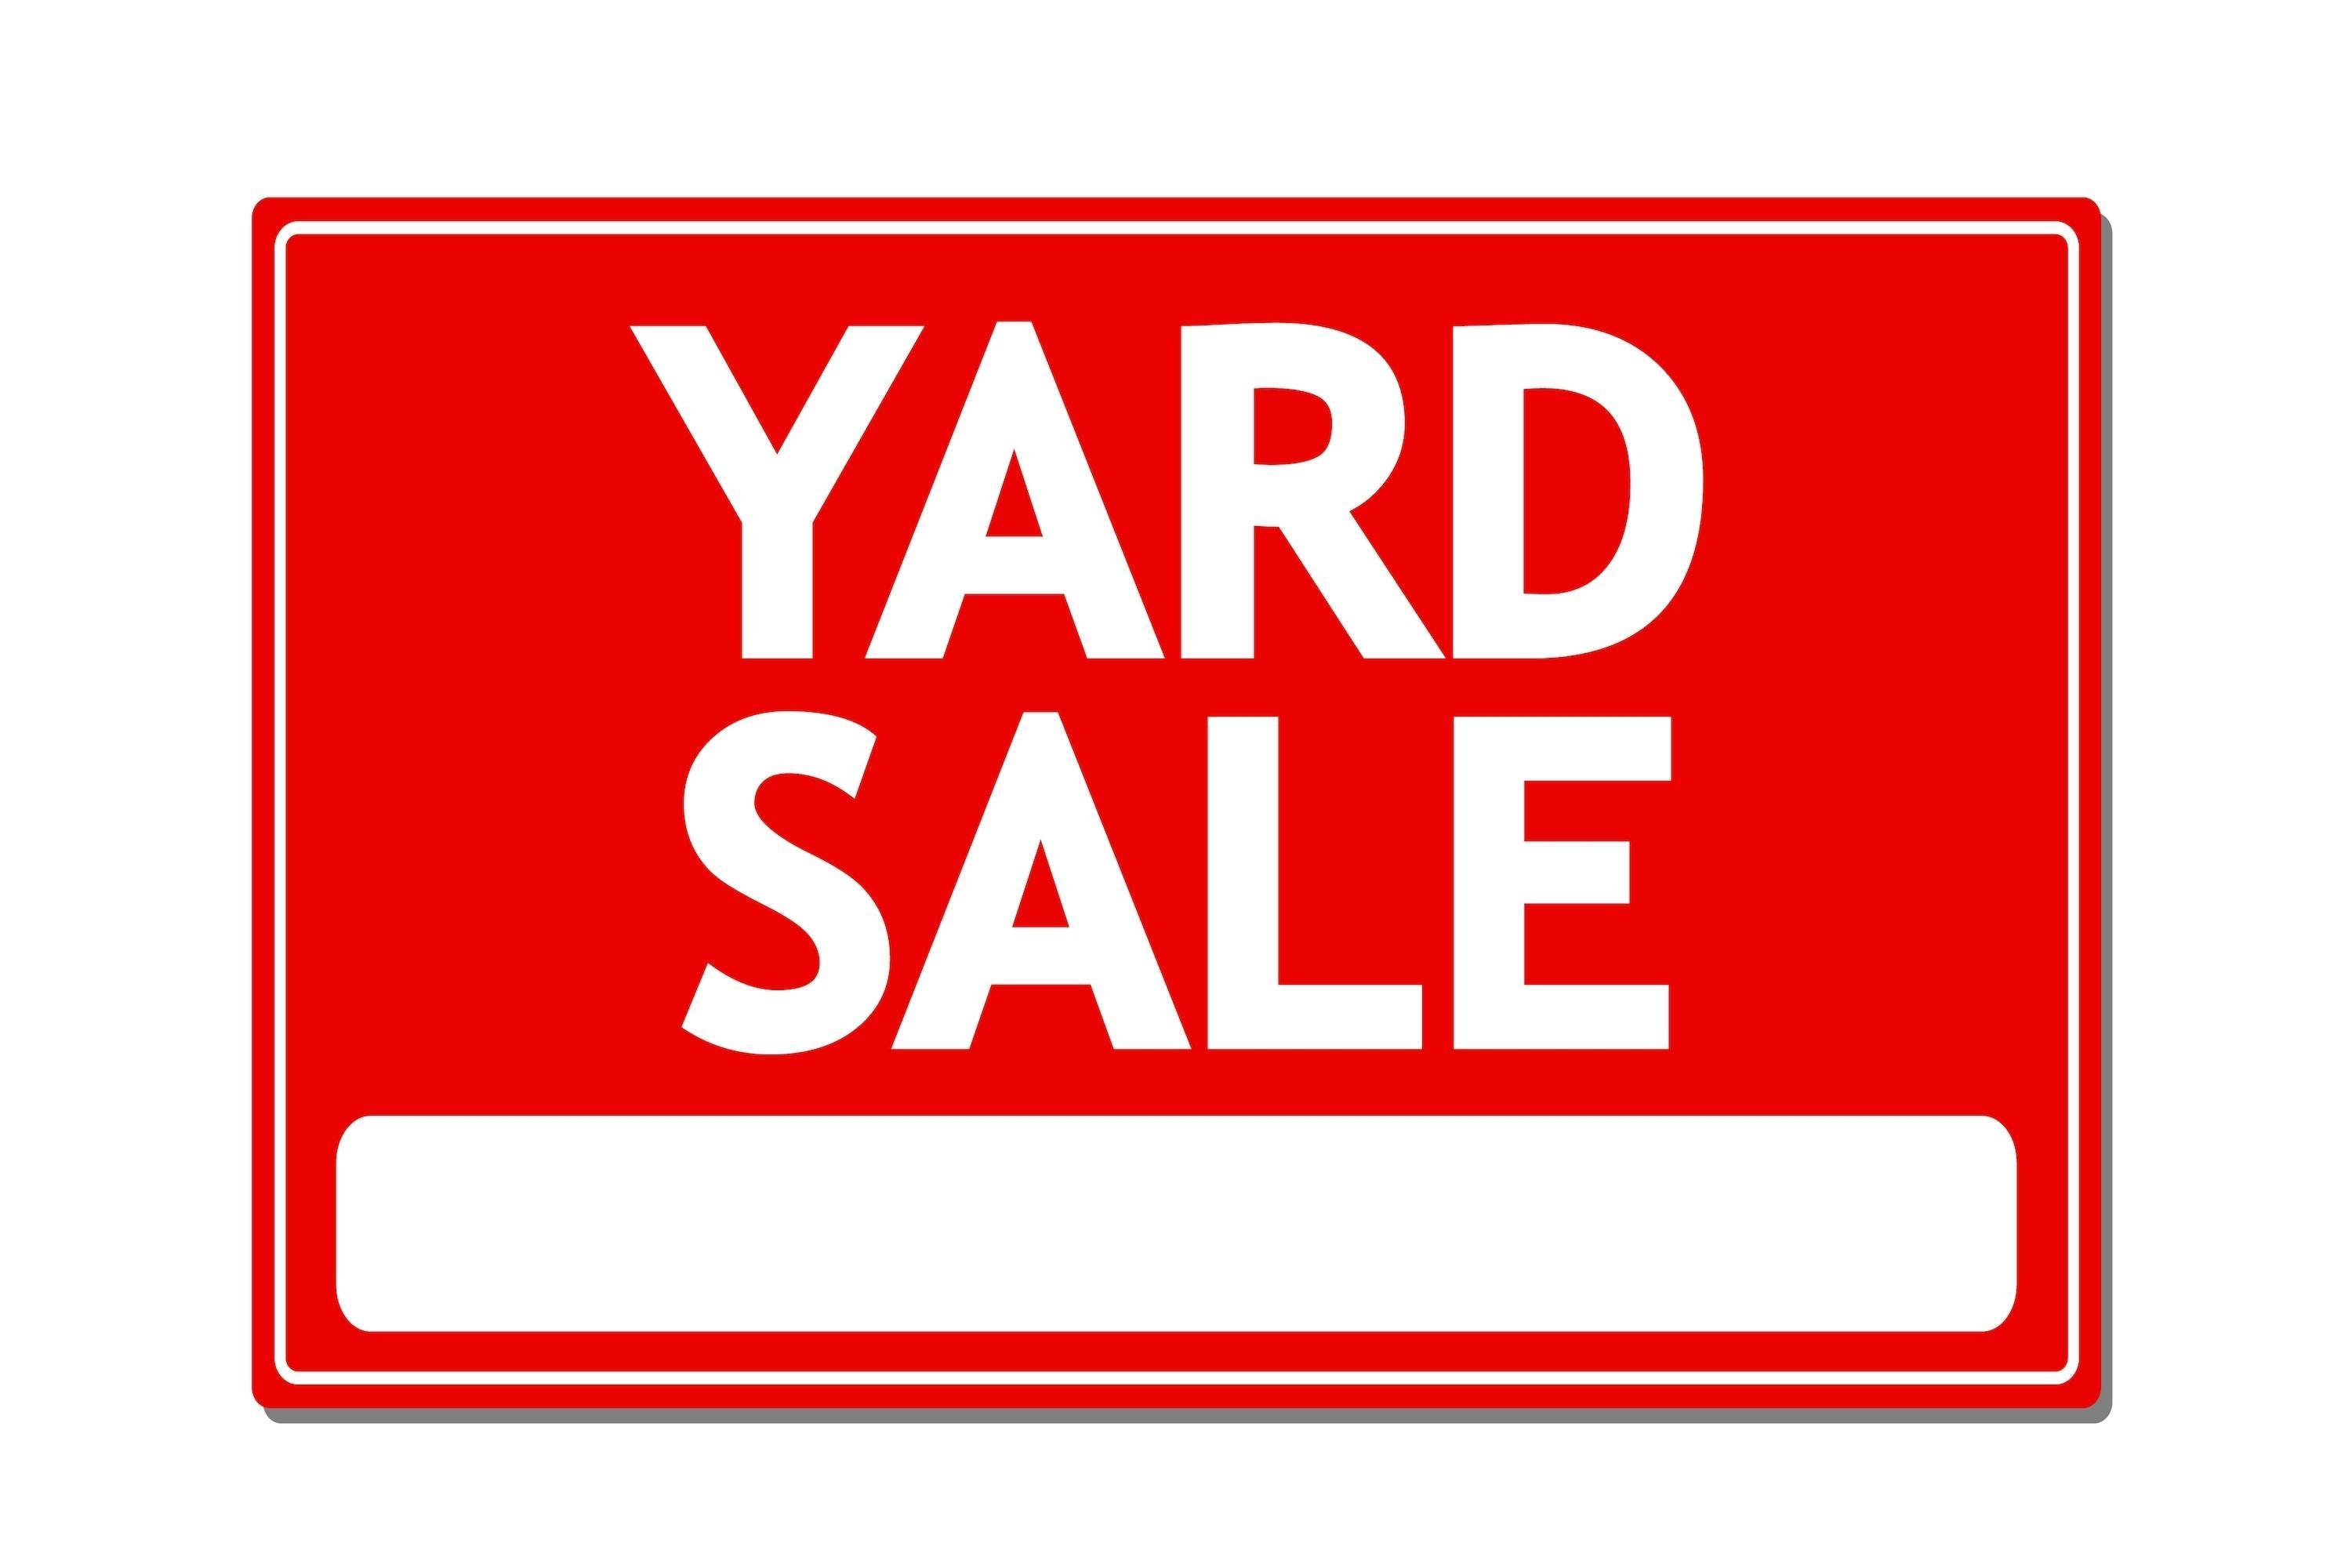 Colts Neck Women's Club 2 Day Annual Indoor Yard Sale ...